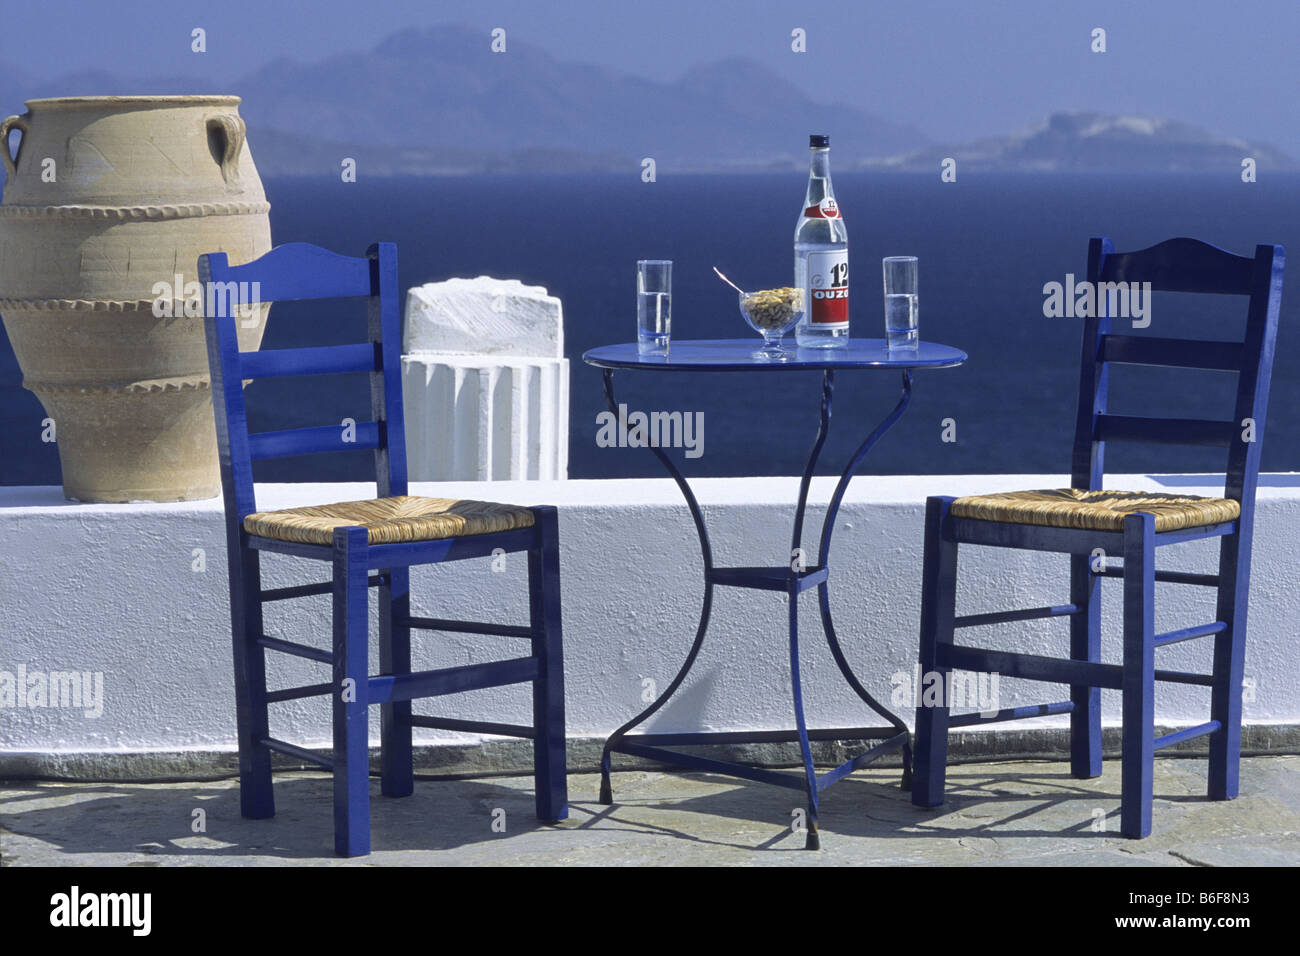 bottle ouzo greece stockfotos bottle ouzo greece bilder alamy. Black Bedroom Furniture Sets. Home Design Ideas